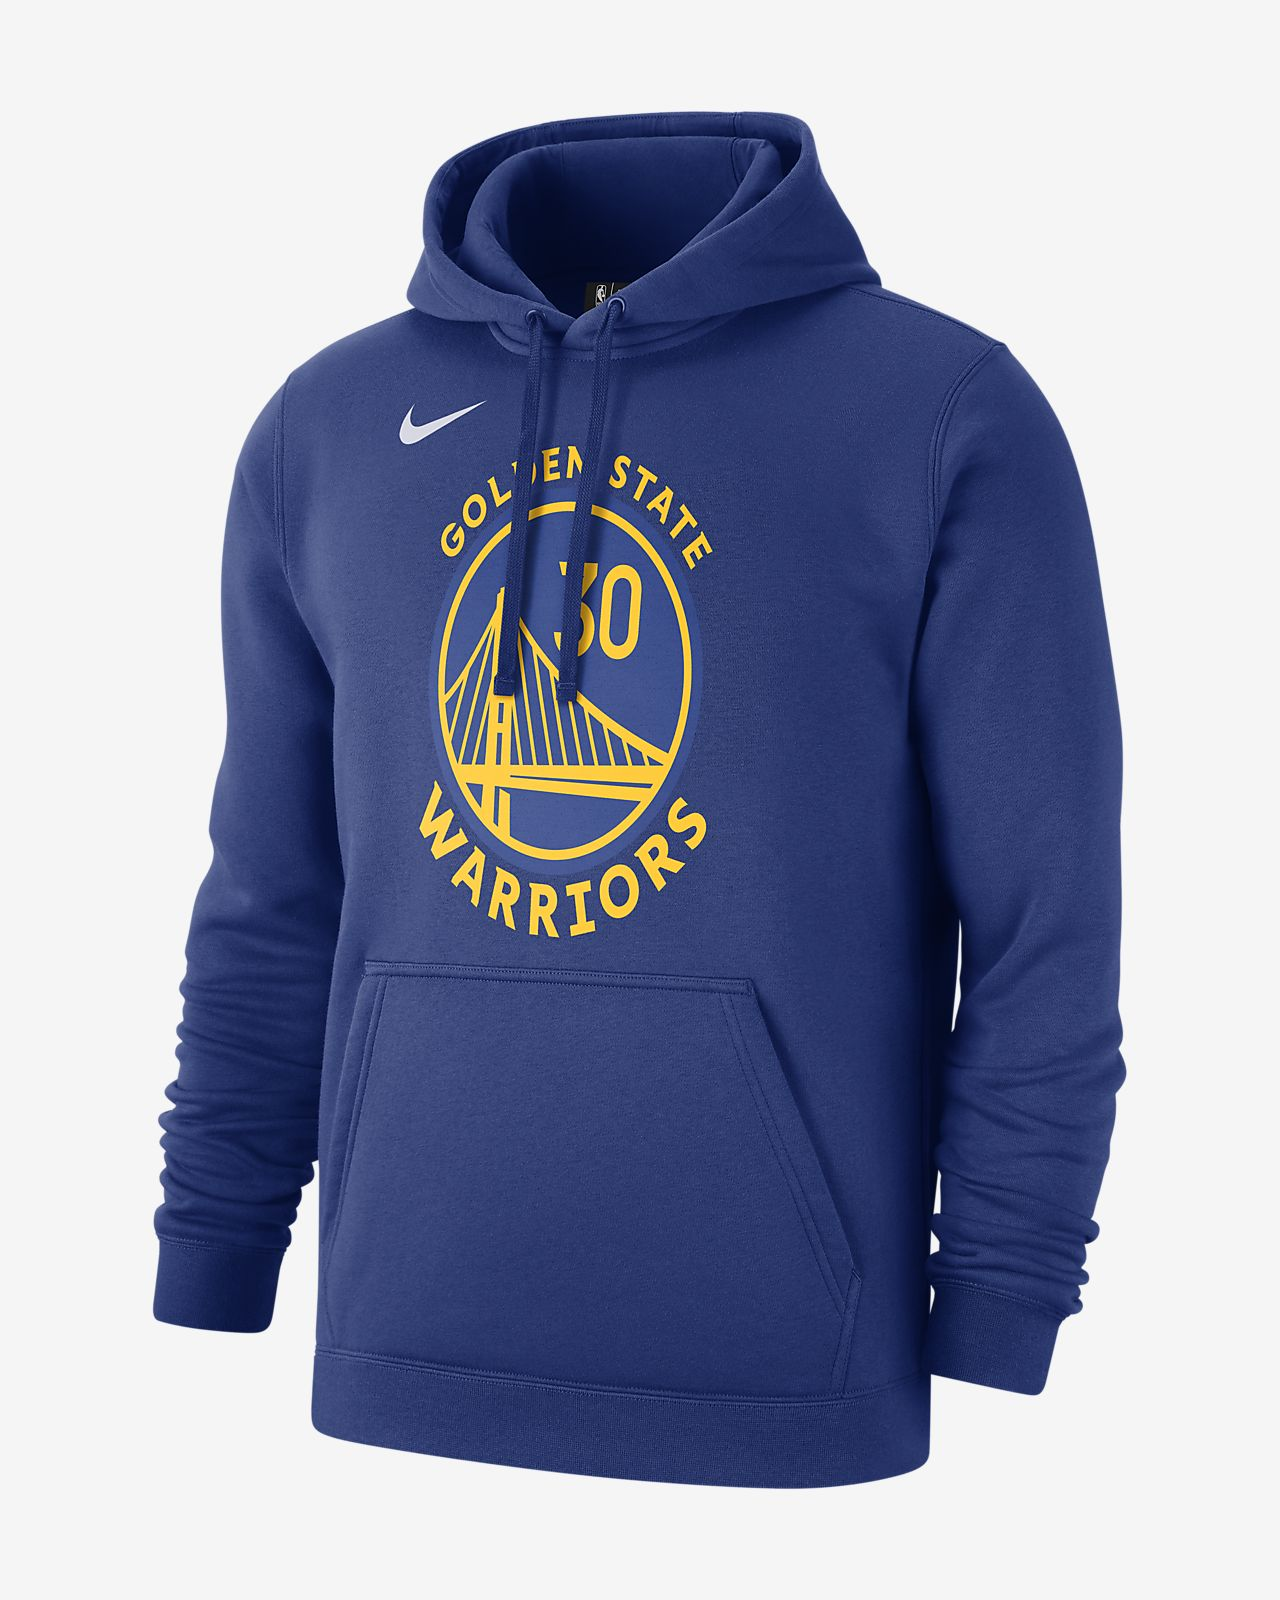 Stephen Curry Golden State Warriors Nike Men's NBA Hoodie